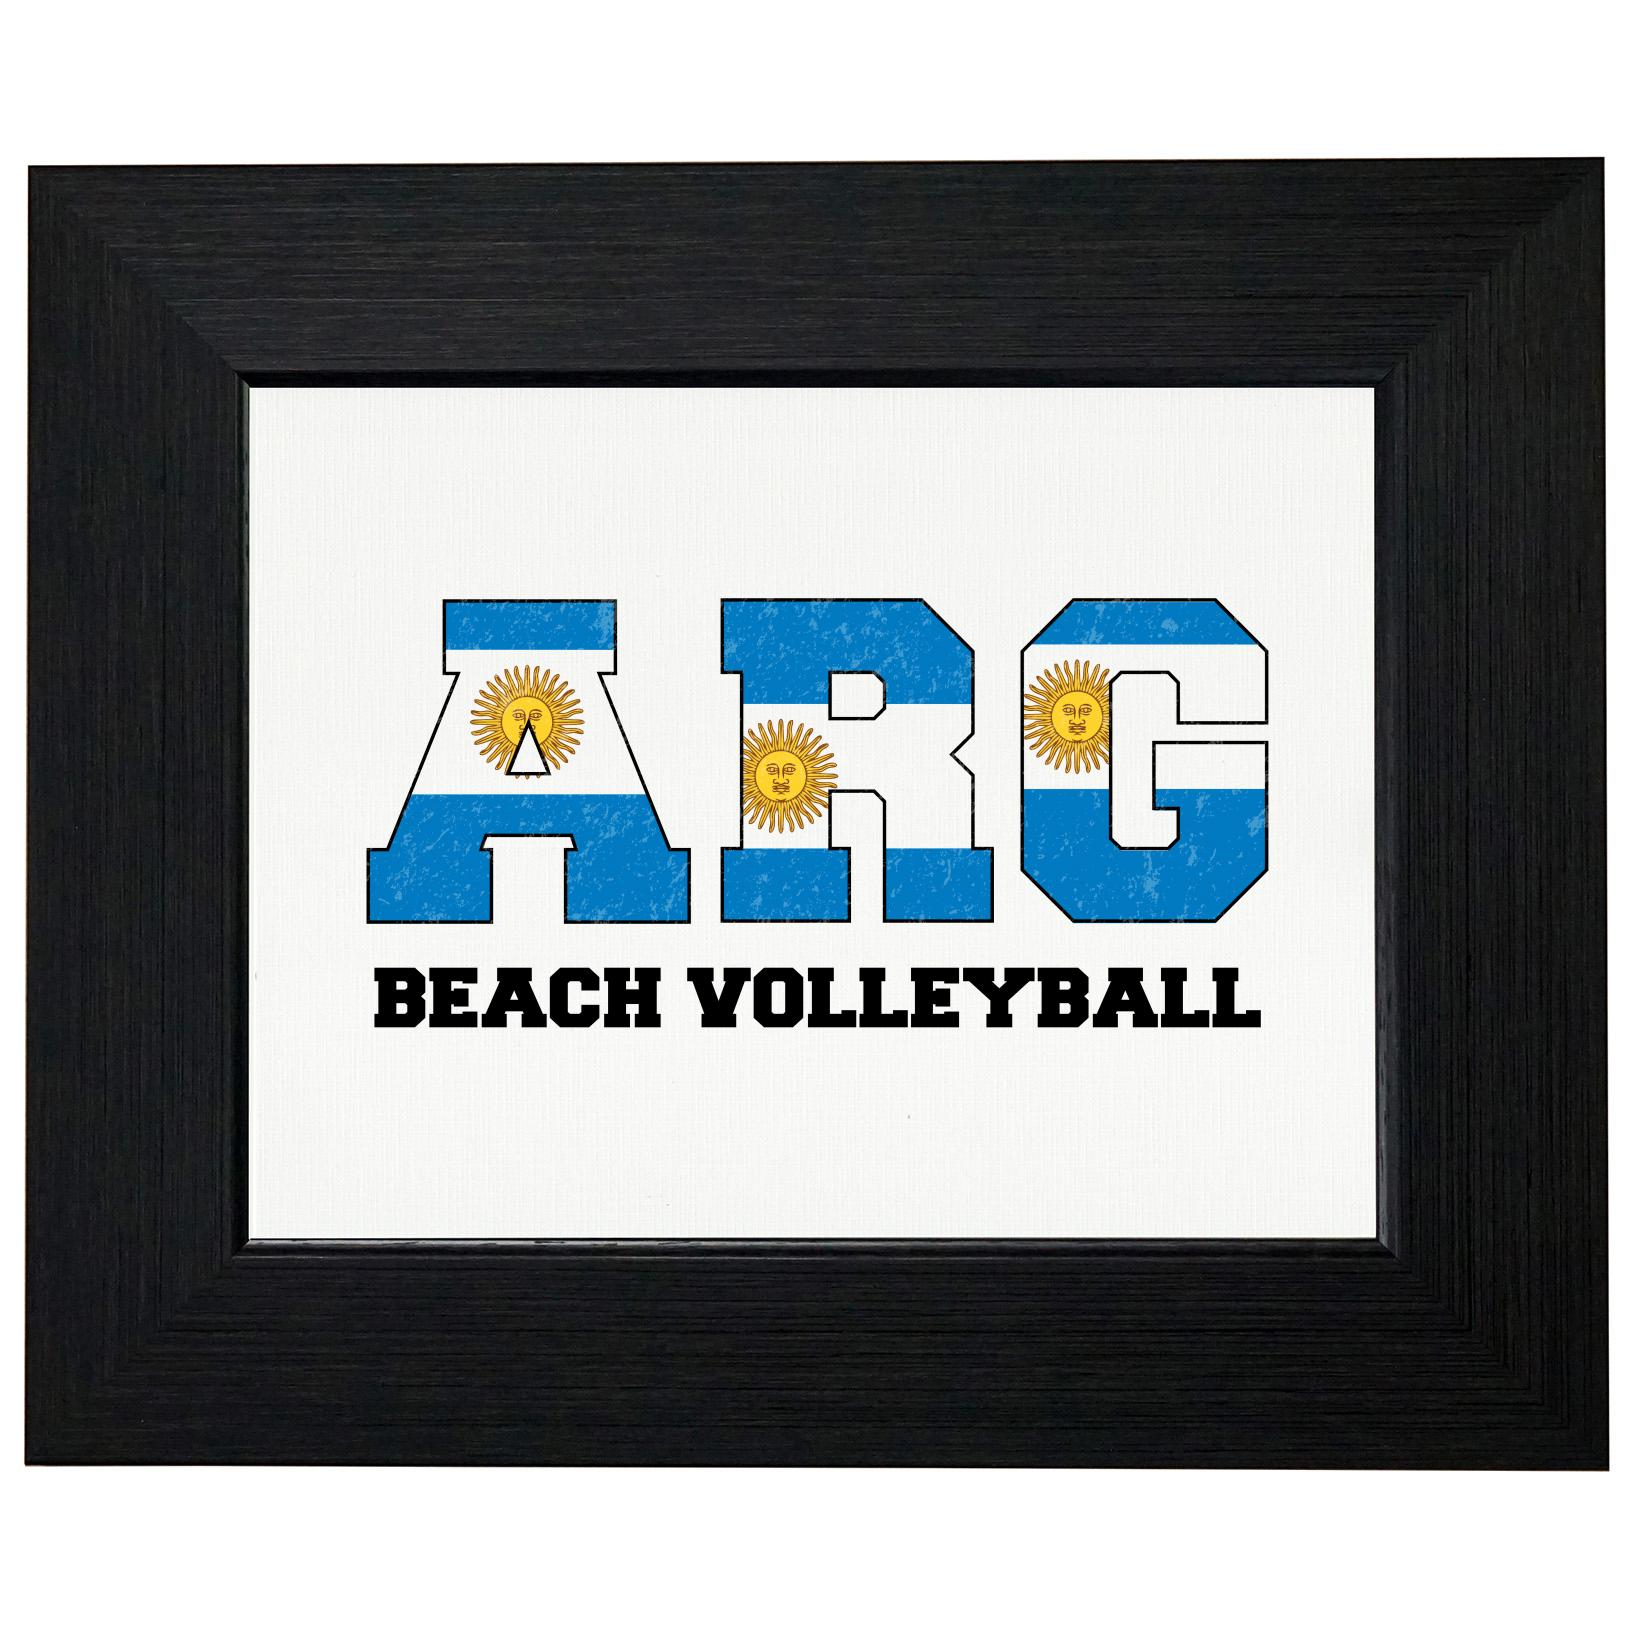 Argentina Beach Volleyball Olympic Games Rio Flag Framed Print Poster Wall or Desk Mount Options by Royal Prints